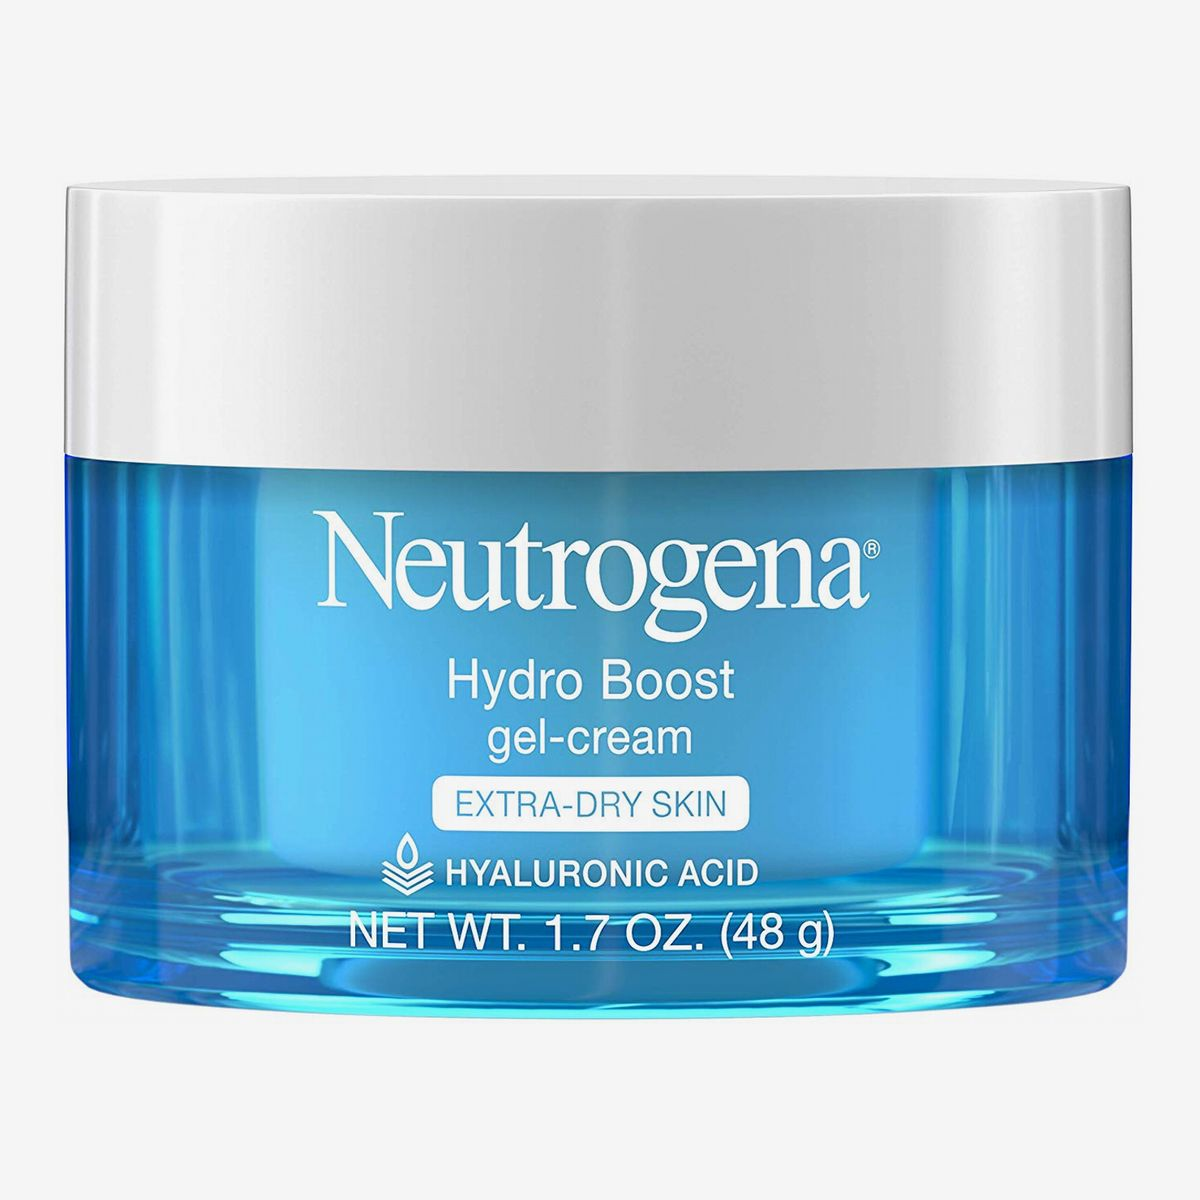 16 Best Moisturizers For Oily Skin 2020 The Strategist New York Magazine